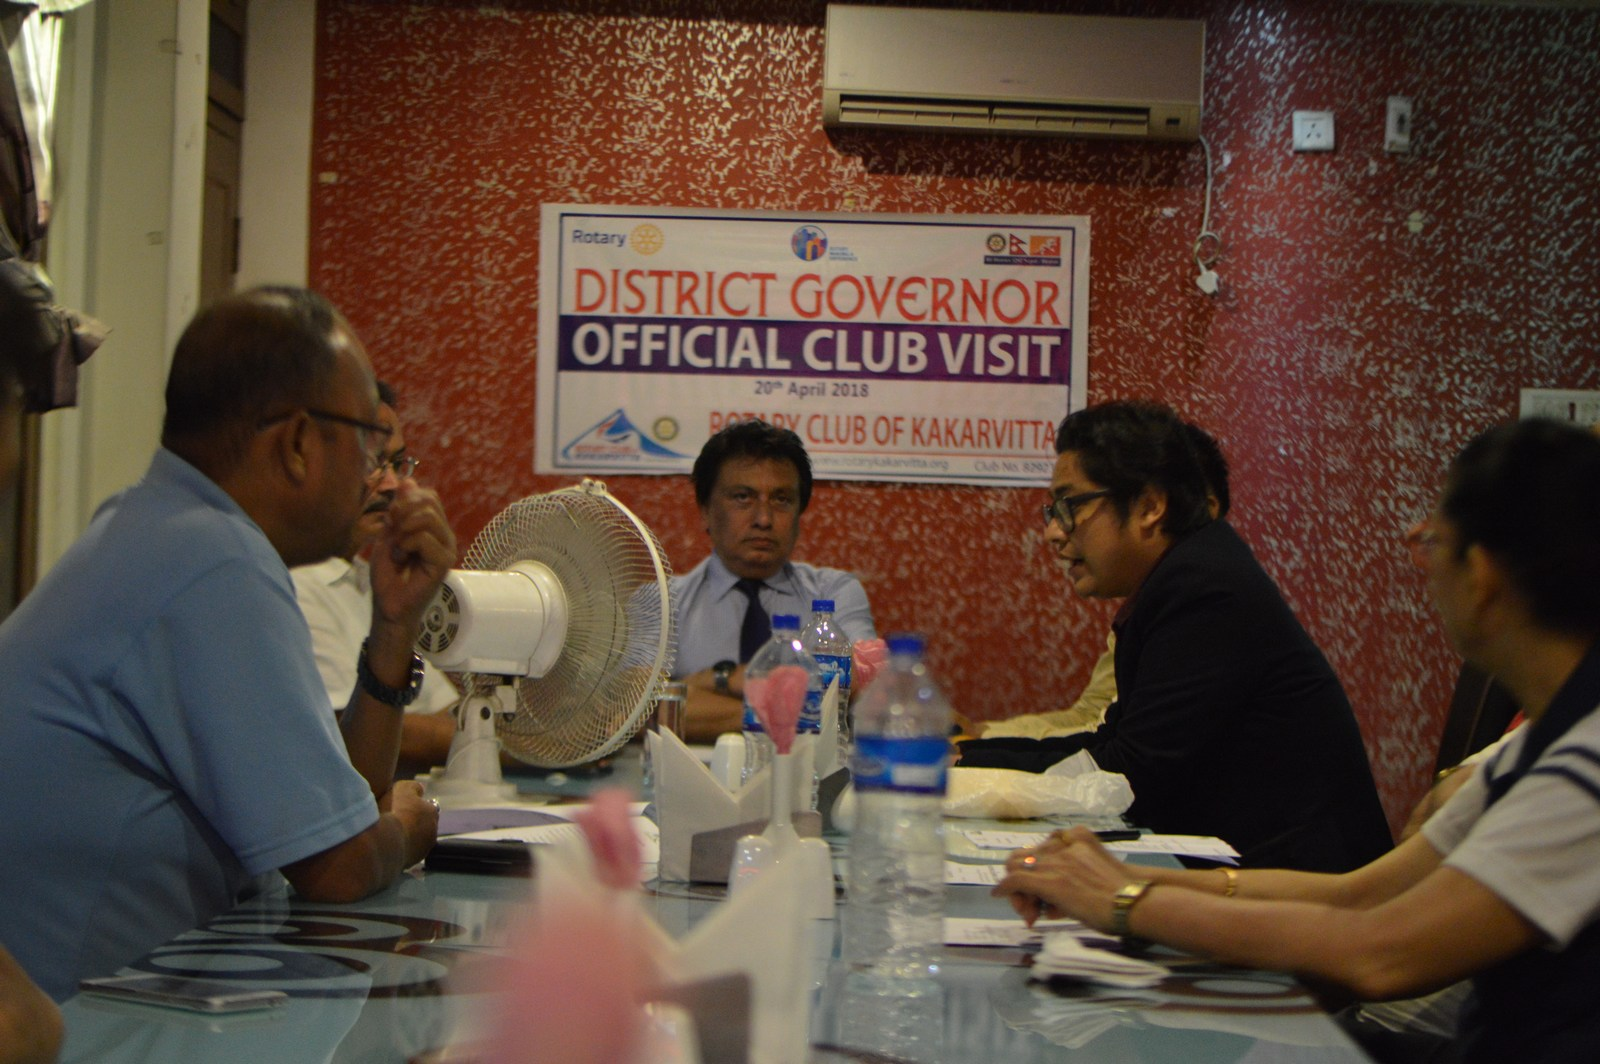 District-Governors-Official-Club-Visit-2017-18-Rotary-Club-of-Kakarvitta-10